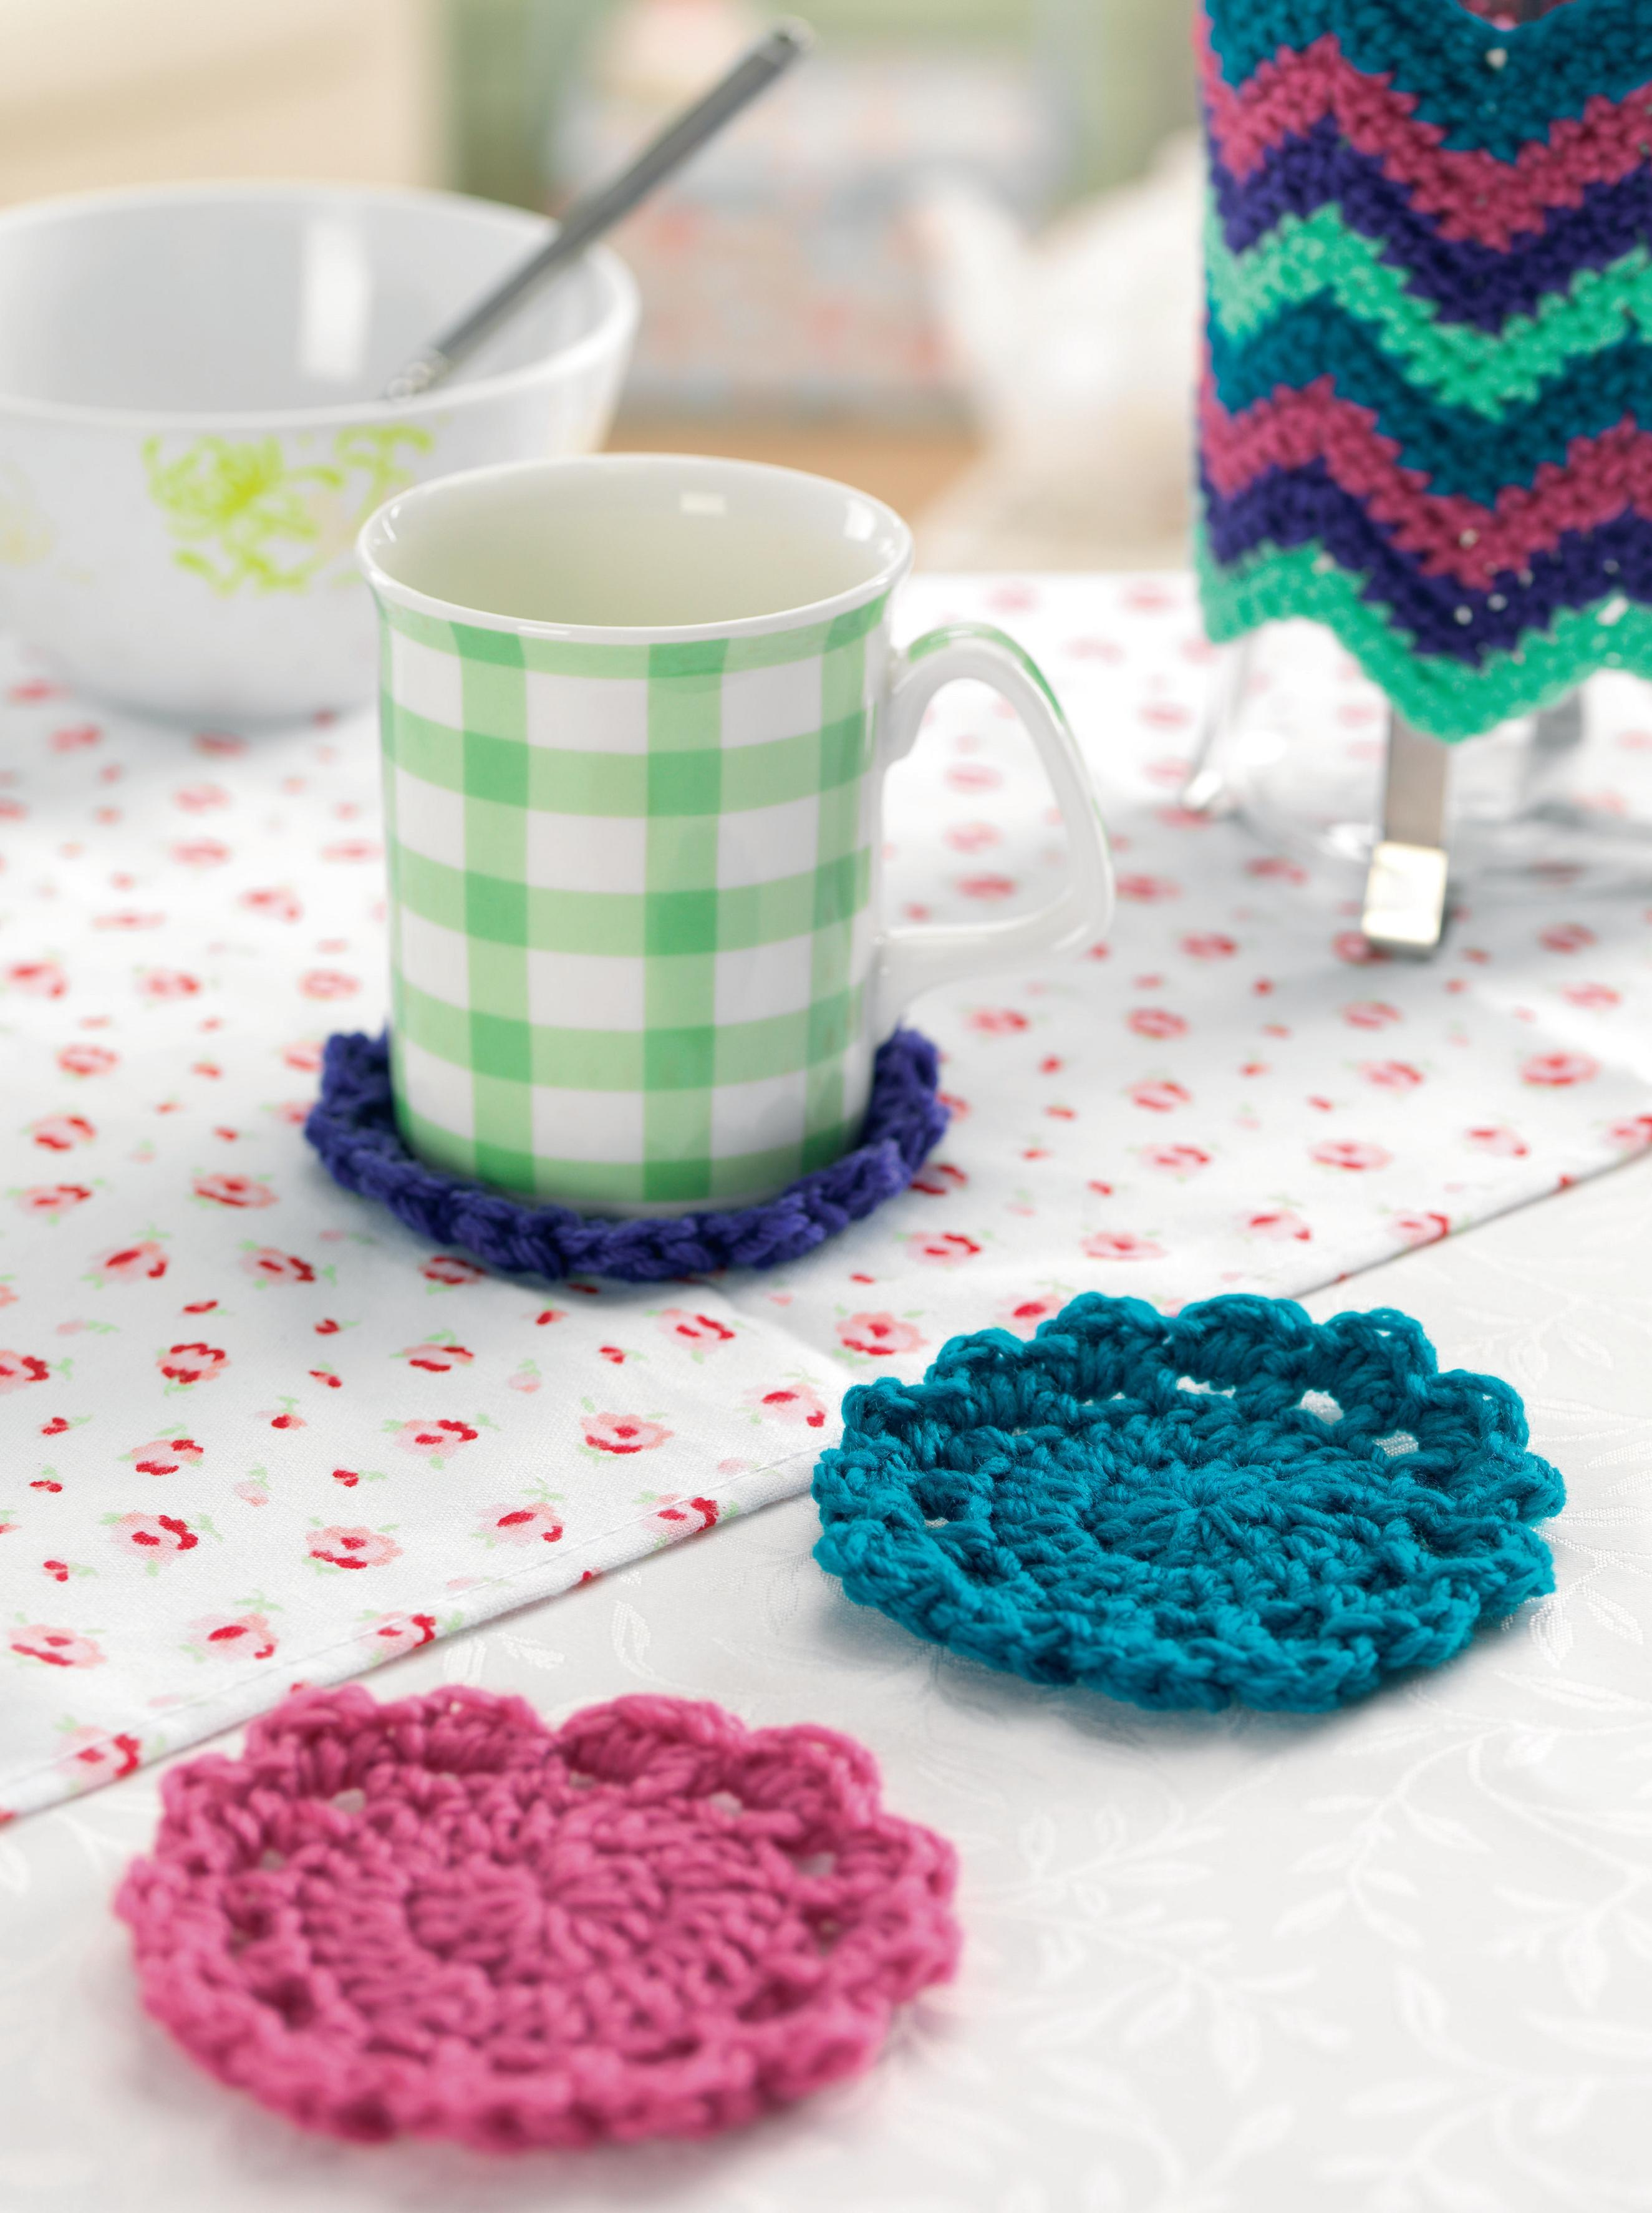 Free Online Crochet Patterns For Coasters : Crochet circular coasters Crochet Pattern